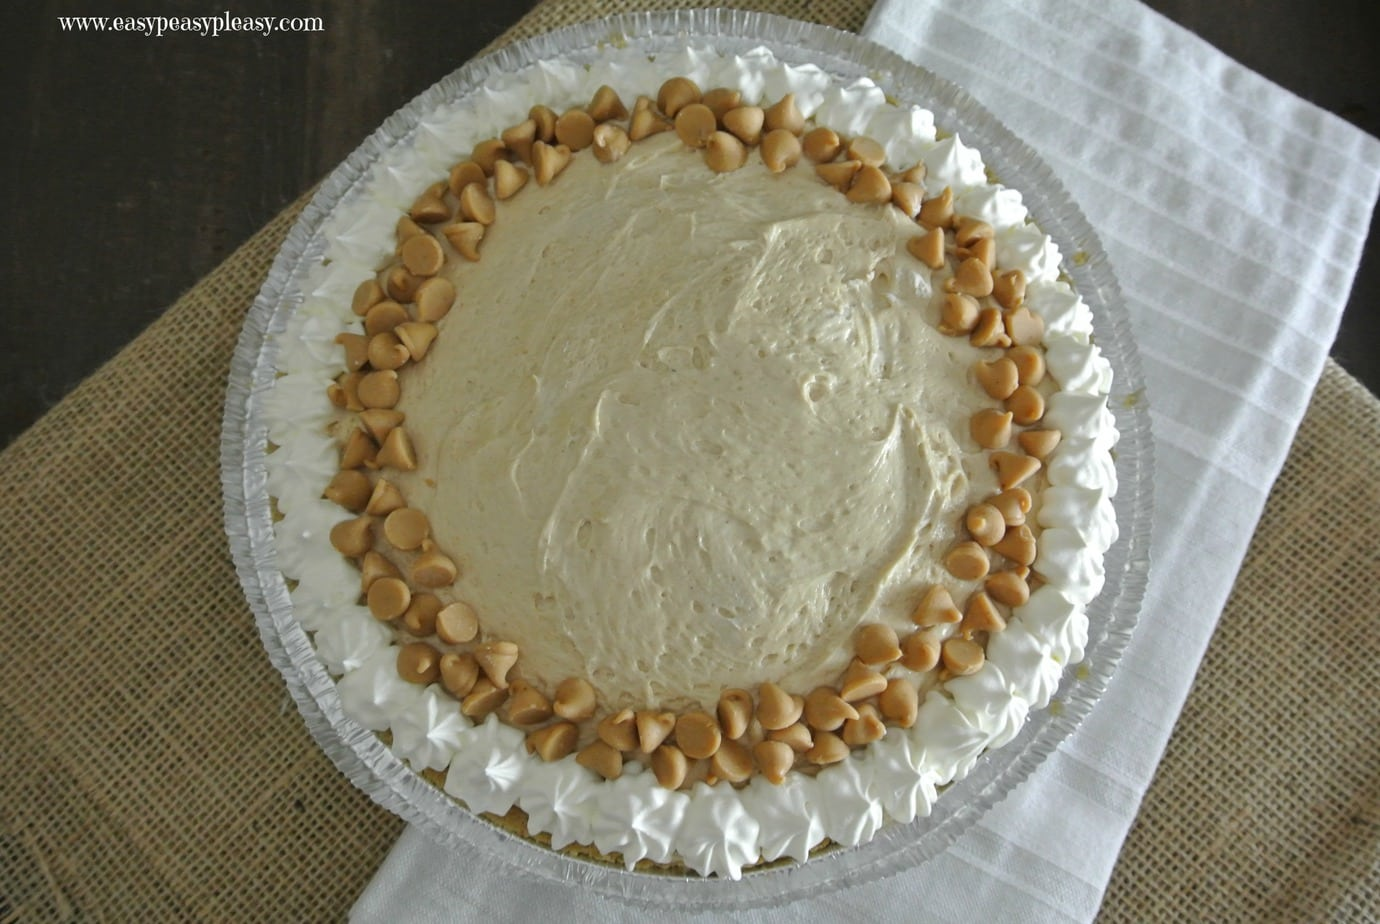 Easy No Bake Make Ahead Peanut Butter Pie